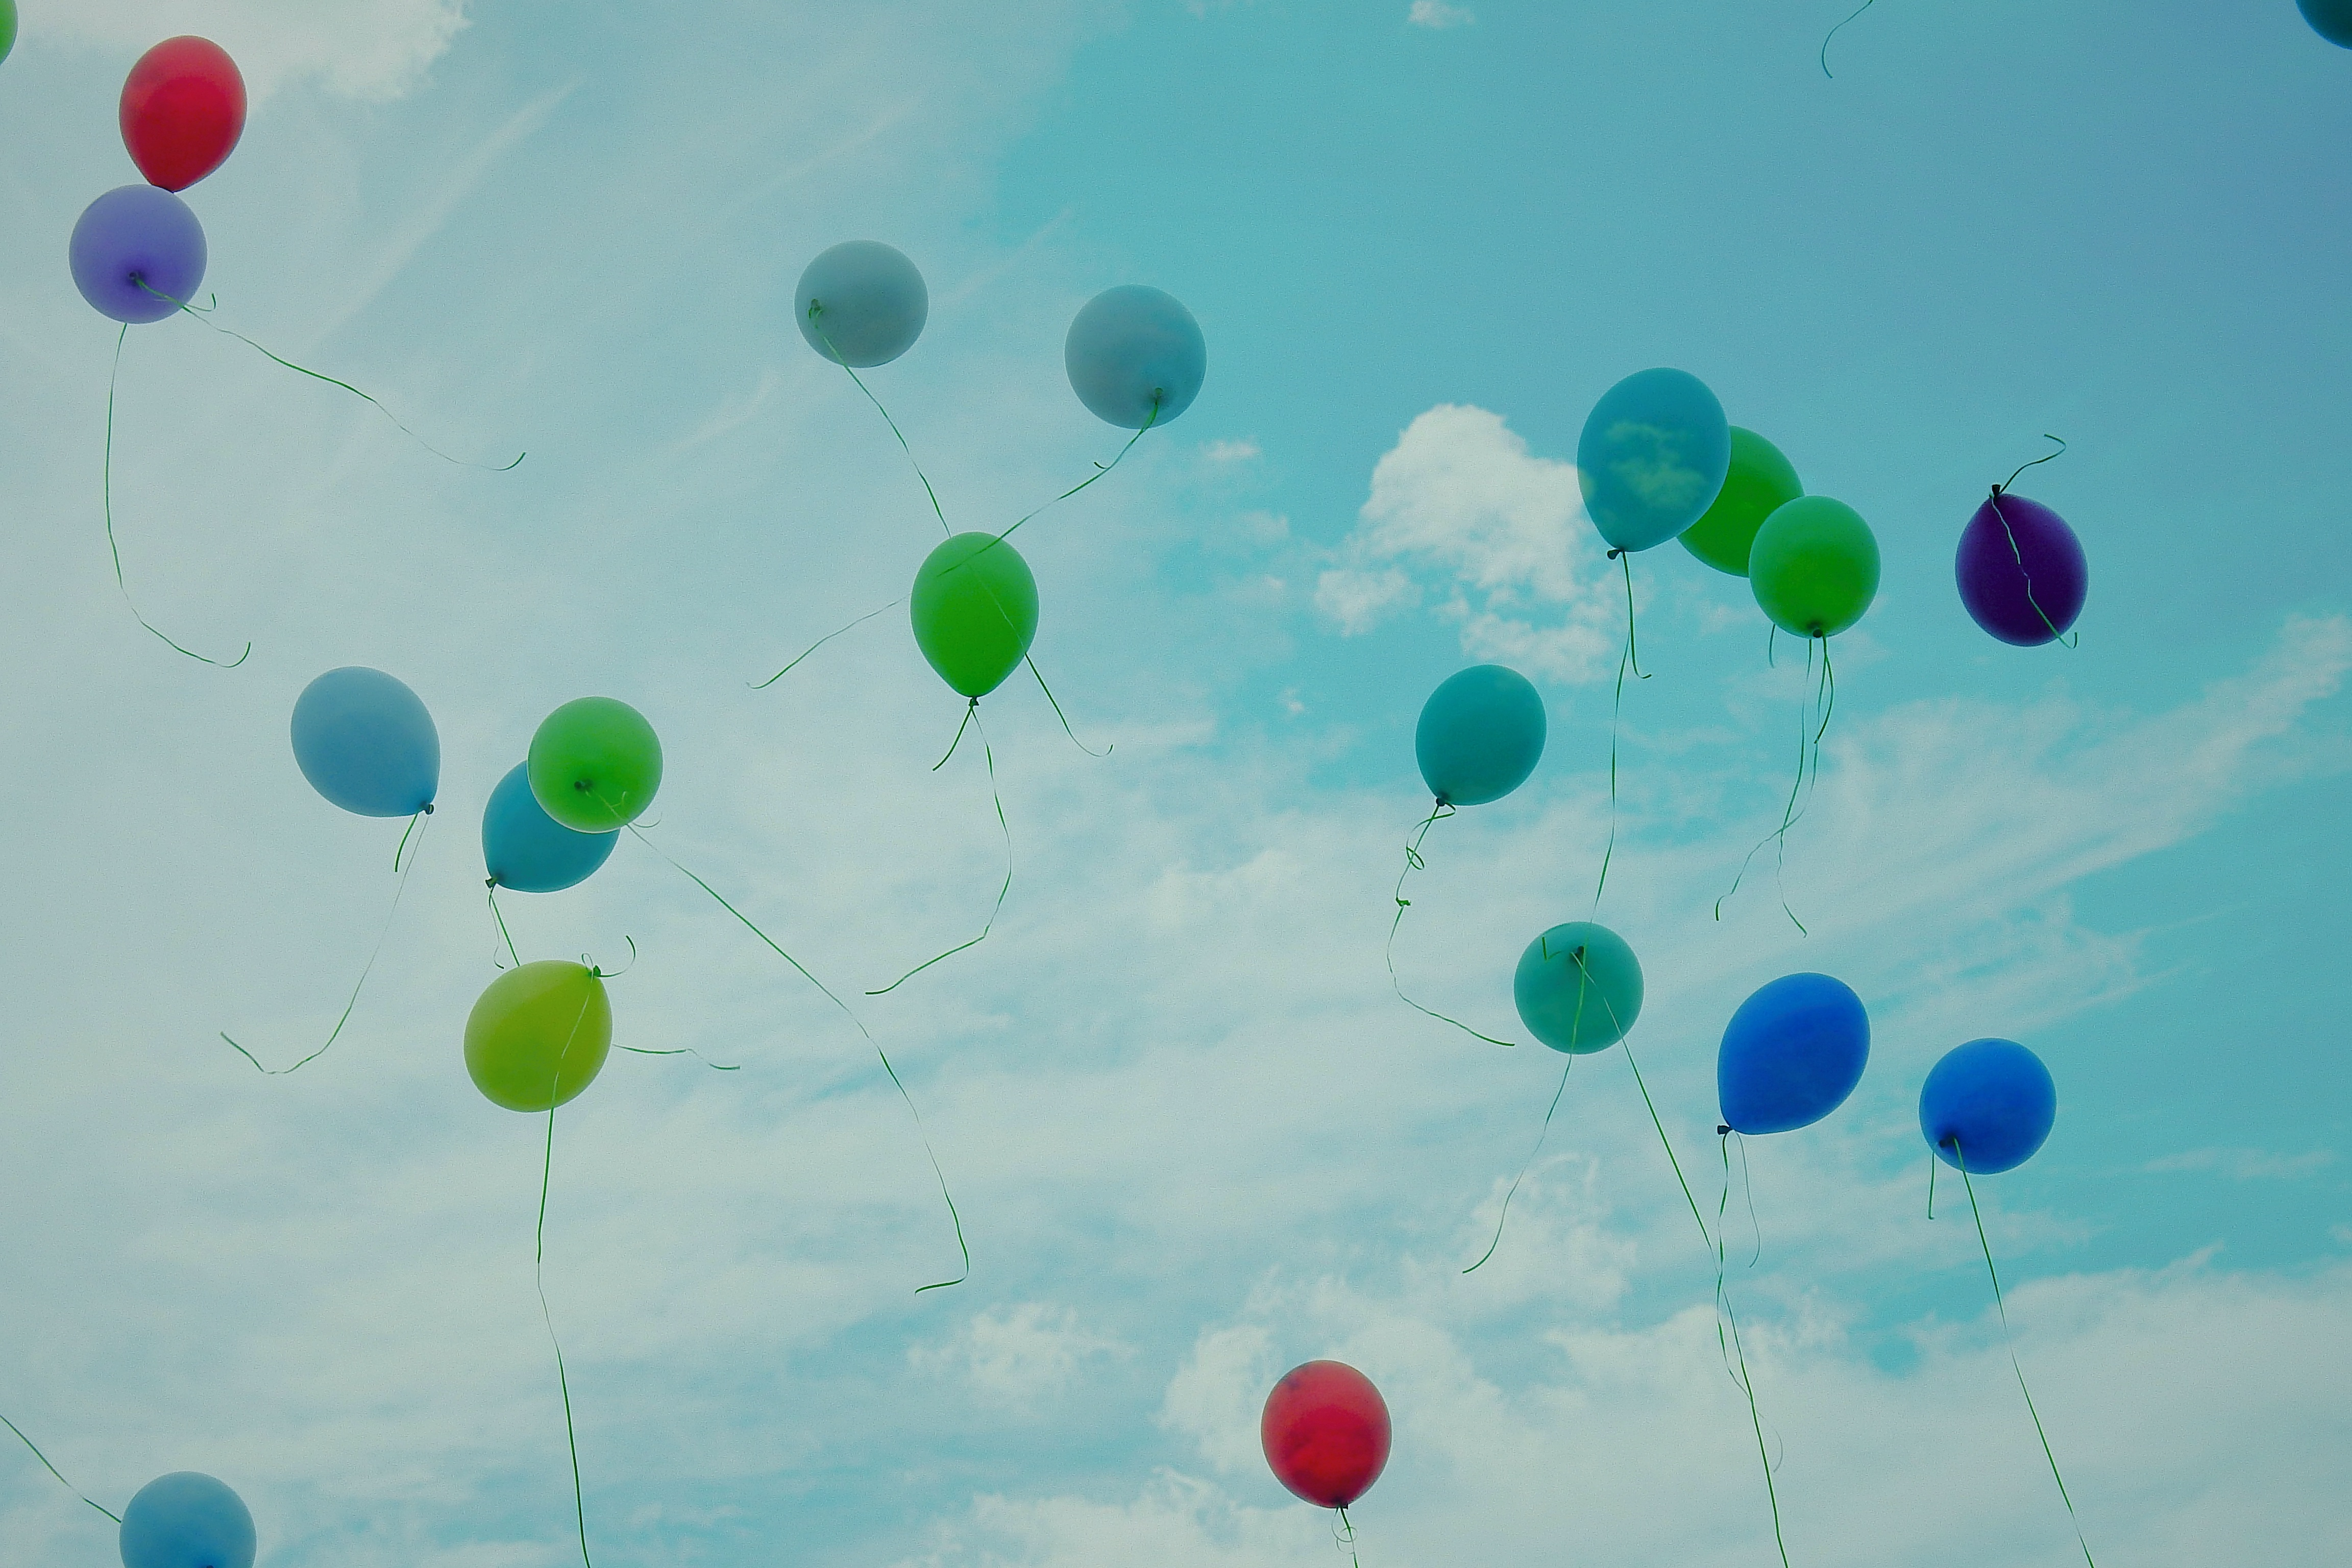 155679 download wallpaper Sky, Clouds, Balloons, Miscellanea, Miscellaneous, Multicolored, Motley, Flight, Ease, Air Balloons screensavers and pictures for free